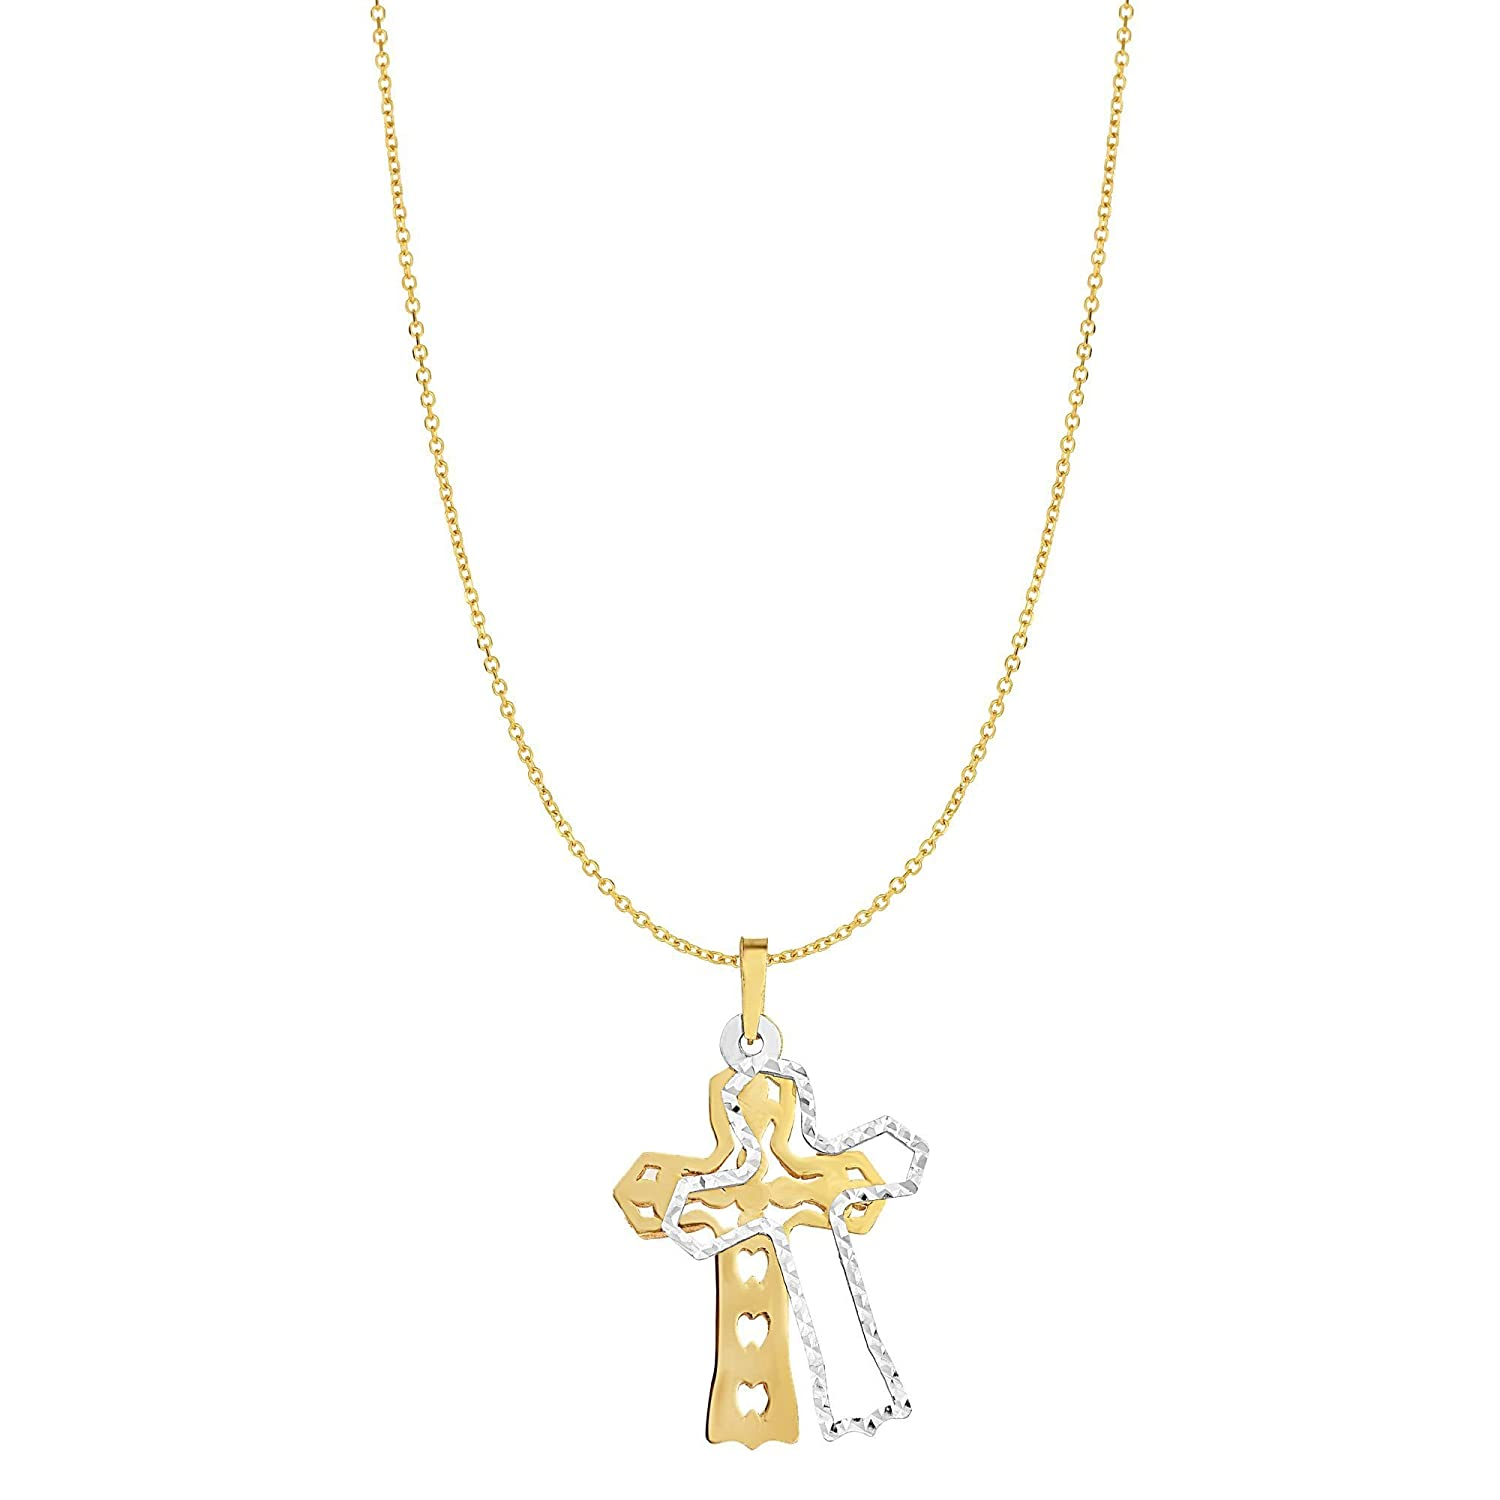 BH 5 Star Jewelry 14kt Gold Yellow+White Finish Shiny+Diamond Cut Fancy Double Disc Cross Pendant on 14kt Gold 18 Yellow Finish 0.8mm Diamond Cut Oval Classic Cable Chain with Lobster Clasp